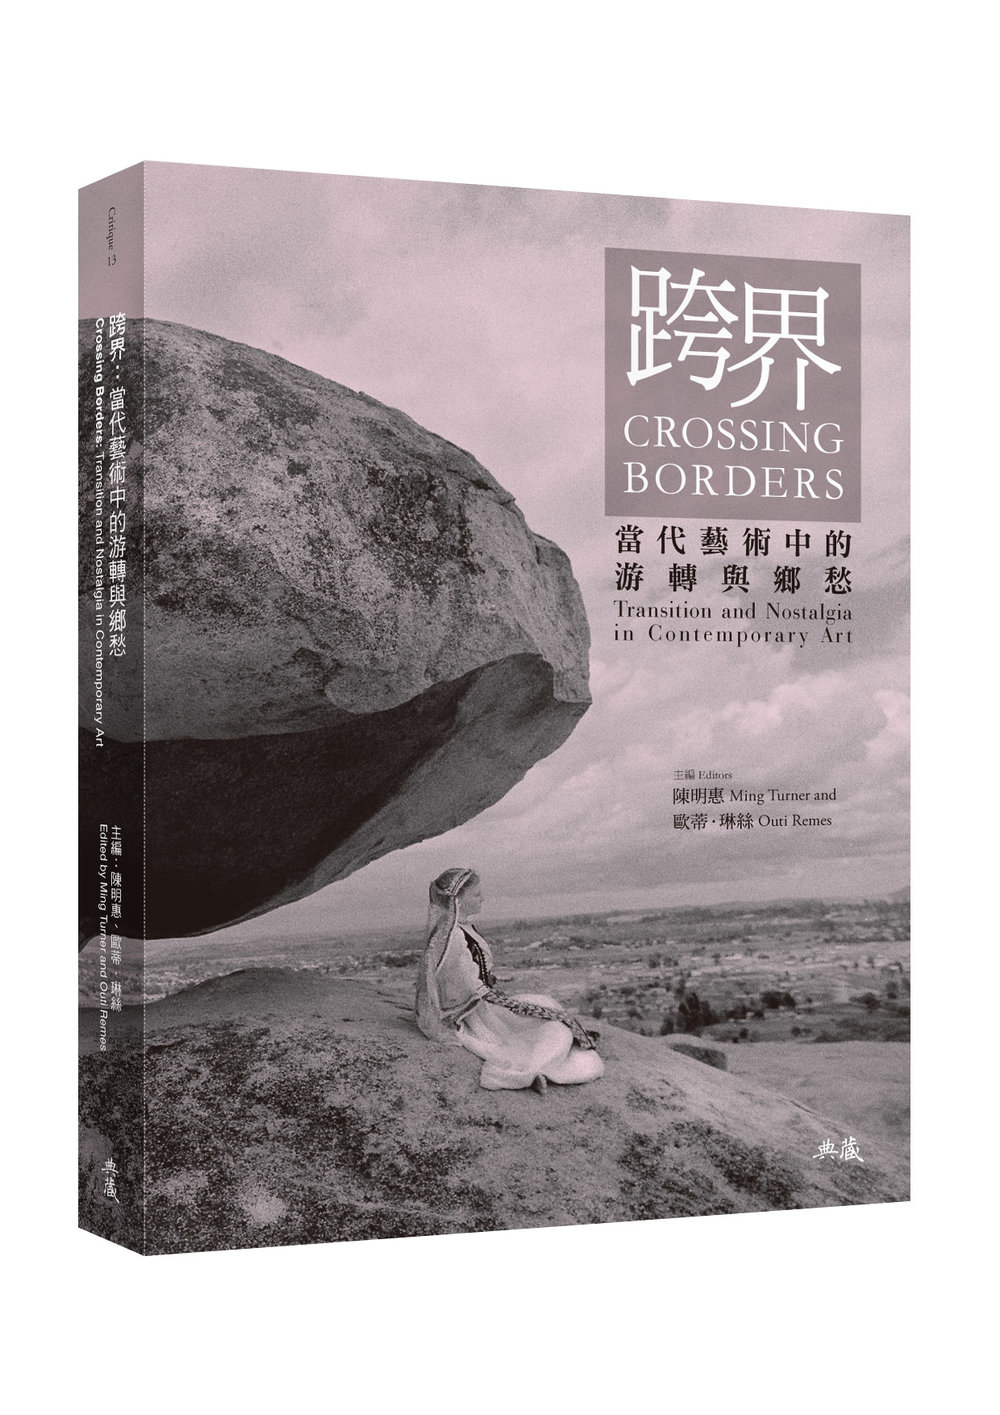 Crossing Borders - Transition and Nostalgia in Contemporary Art'  English and ChinesePublisher Artouch, Taipei, TaiwanEditor Dr Ming Turner, Oute Remes